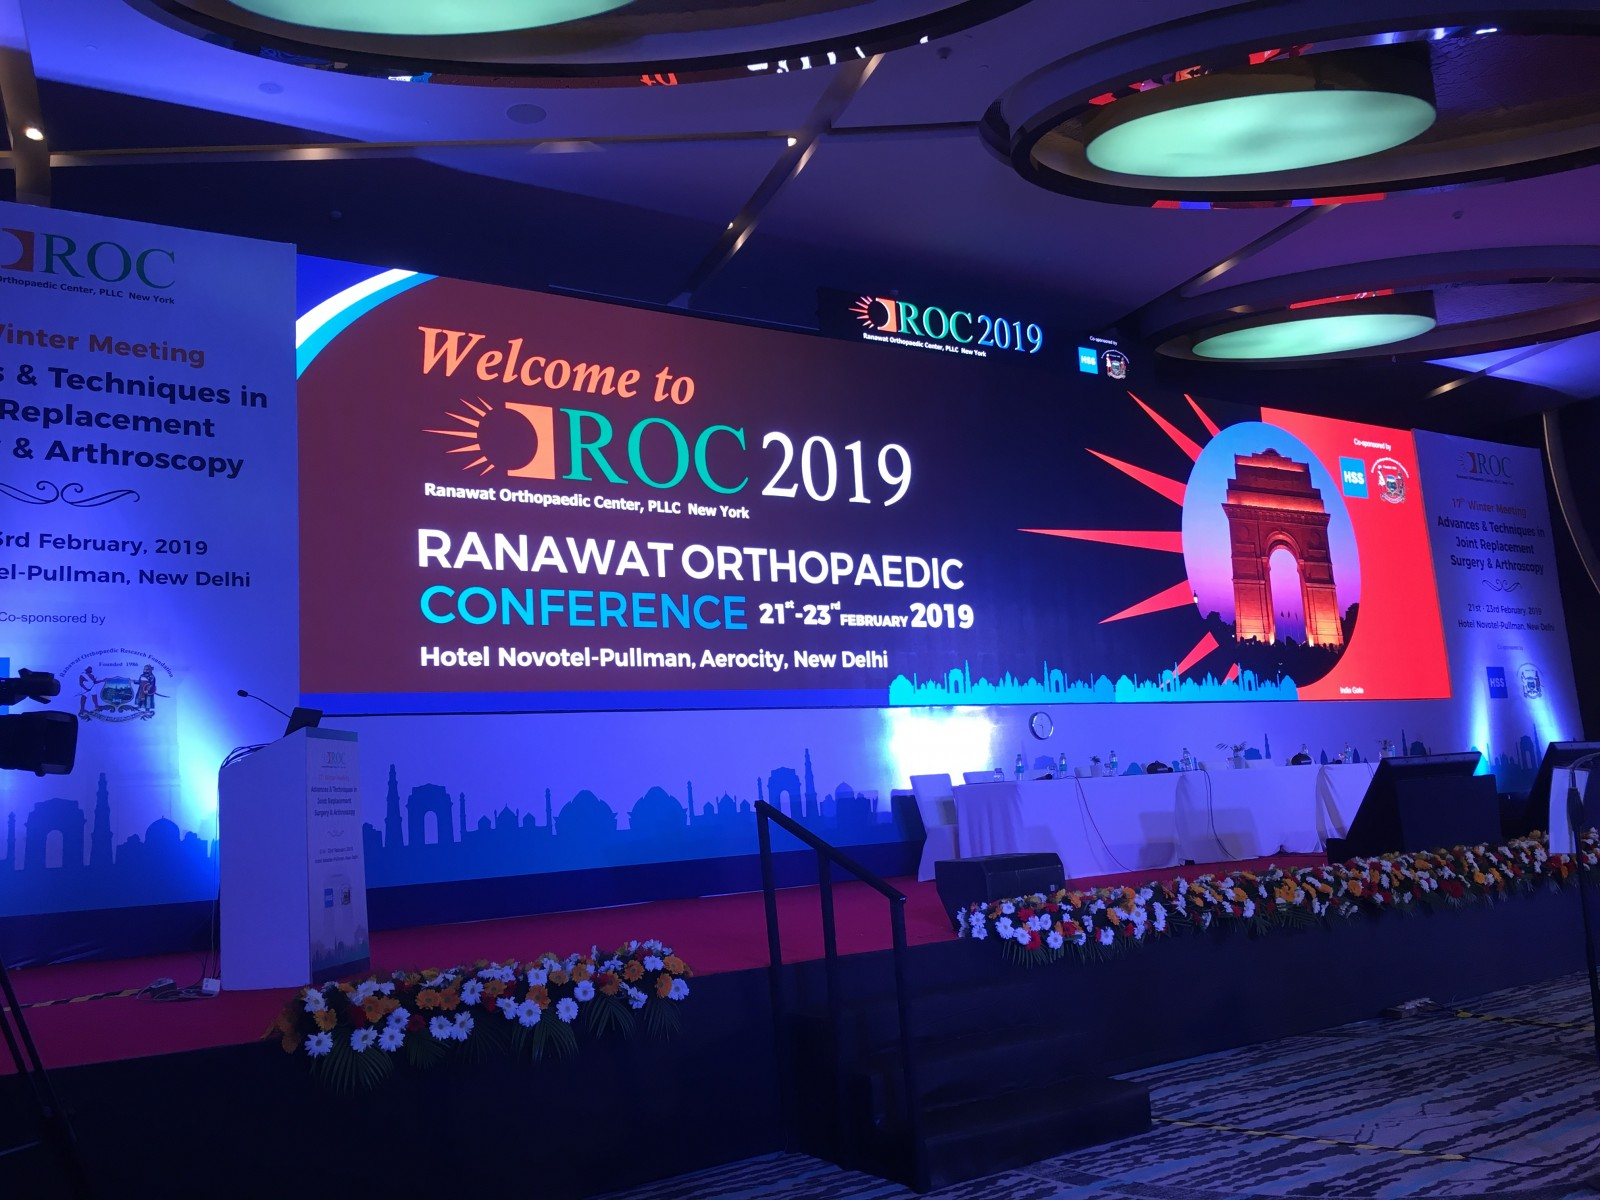 HSS Co-sponsors Orthopaedic Conference in India